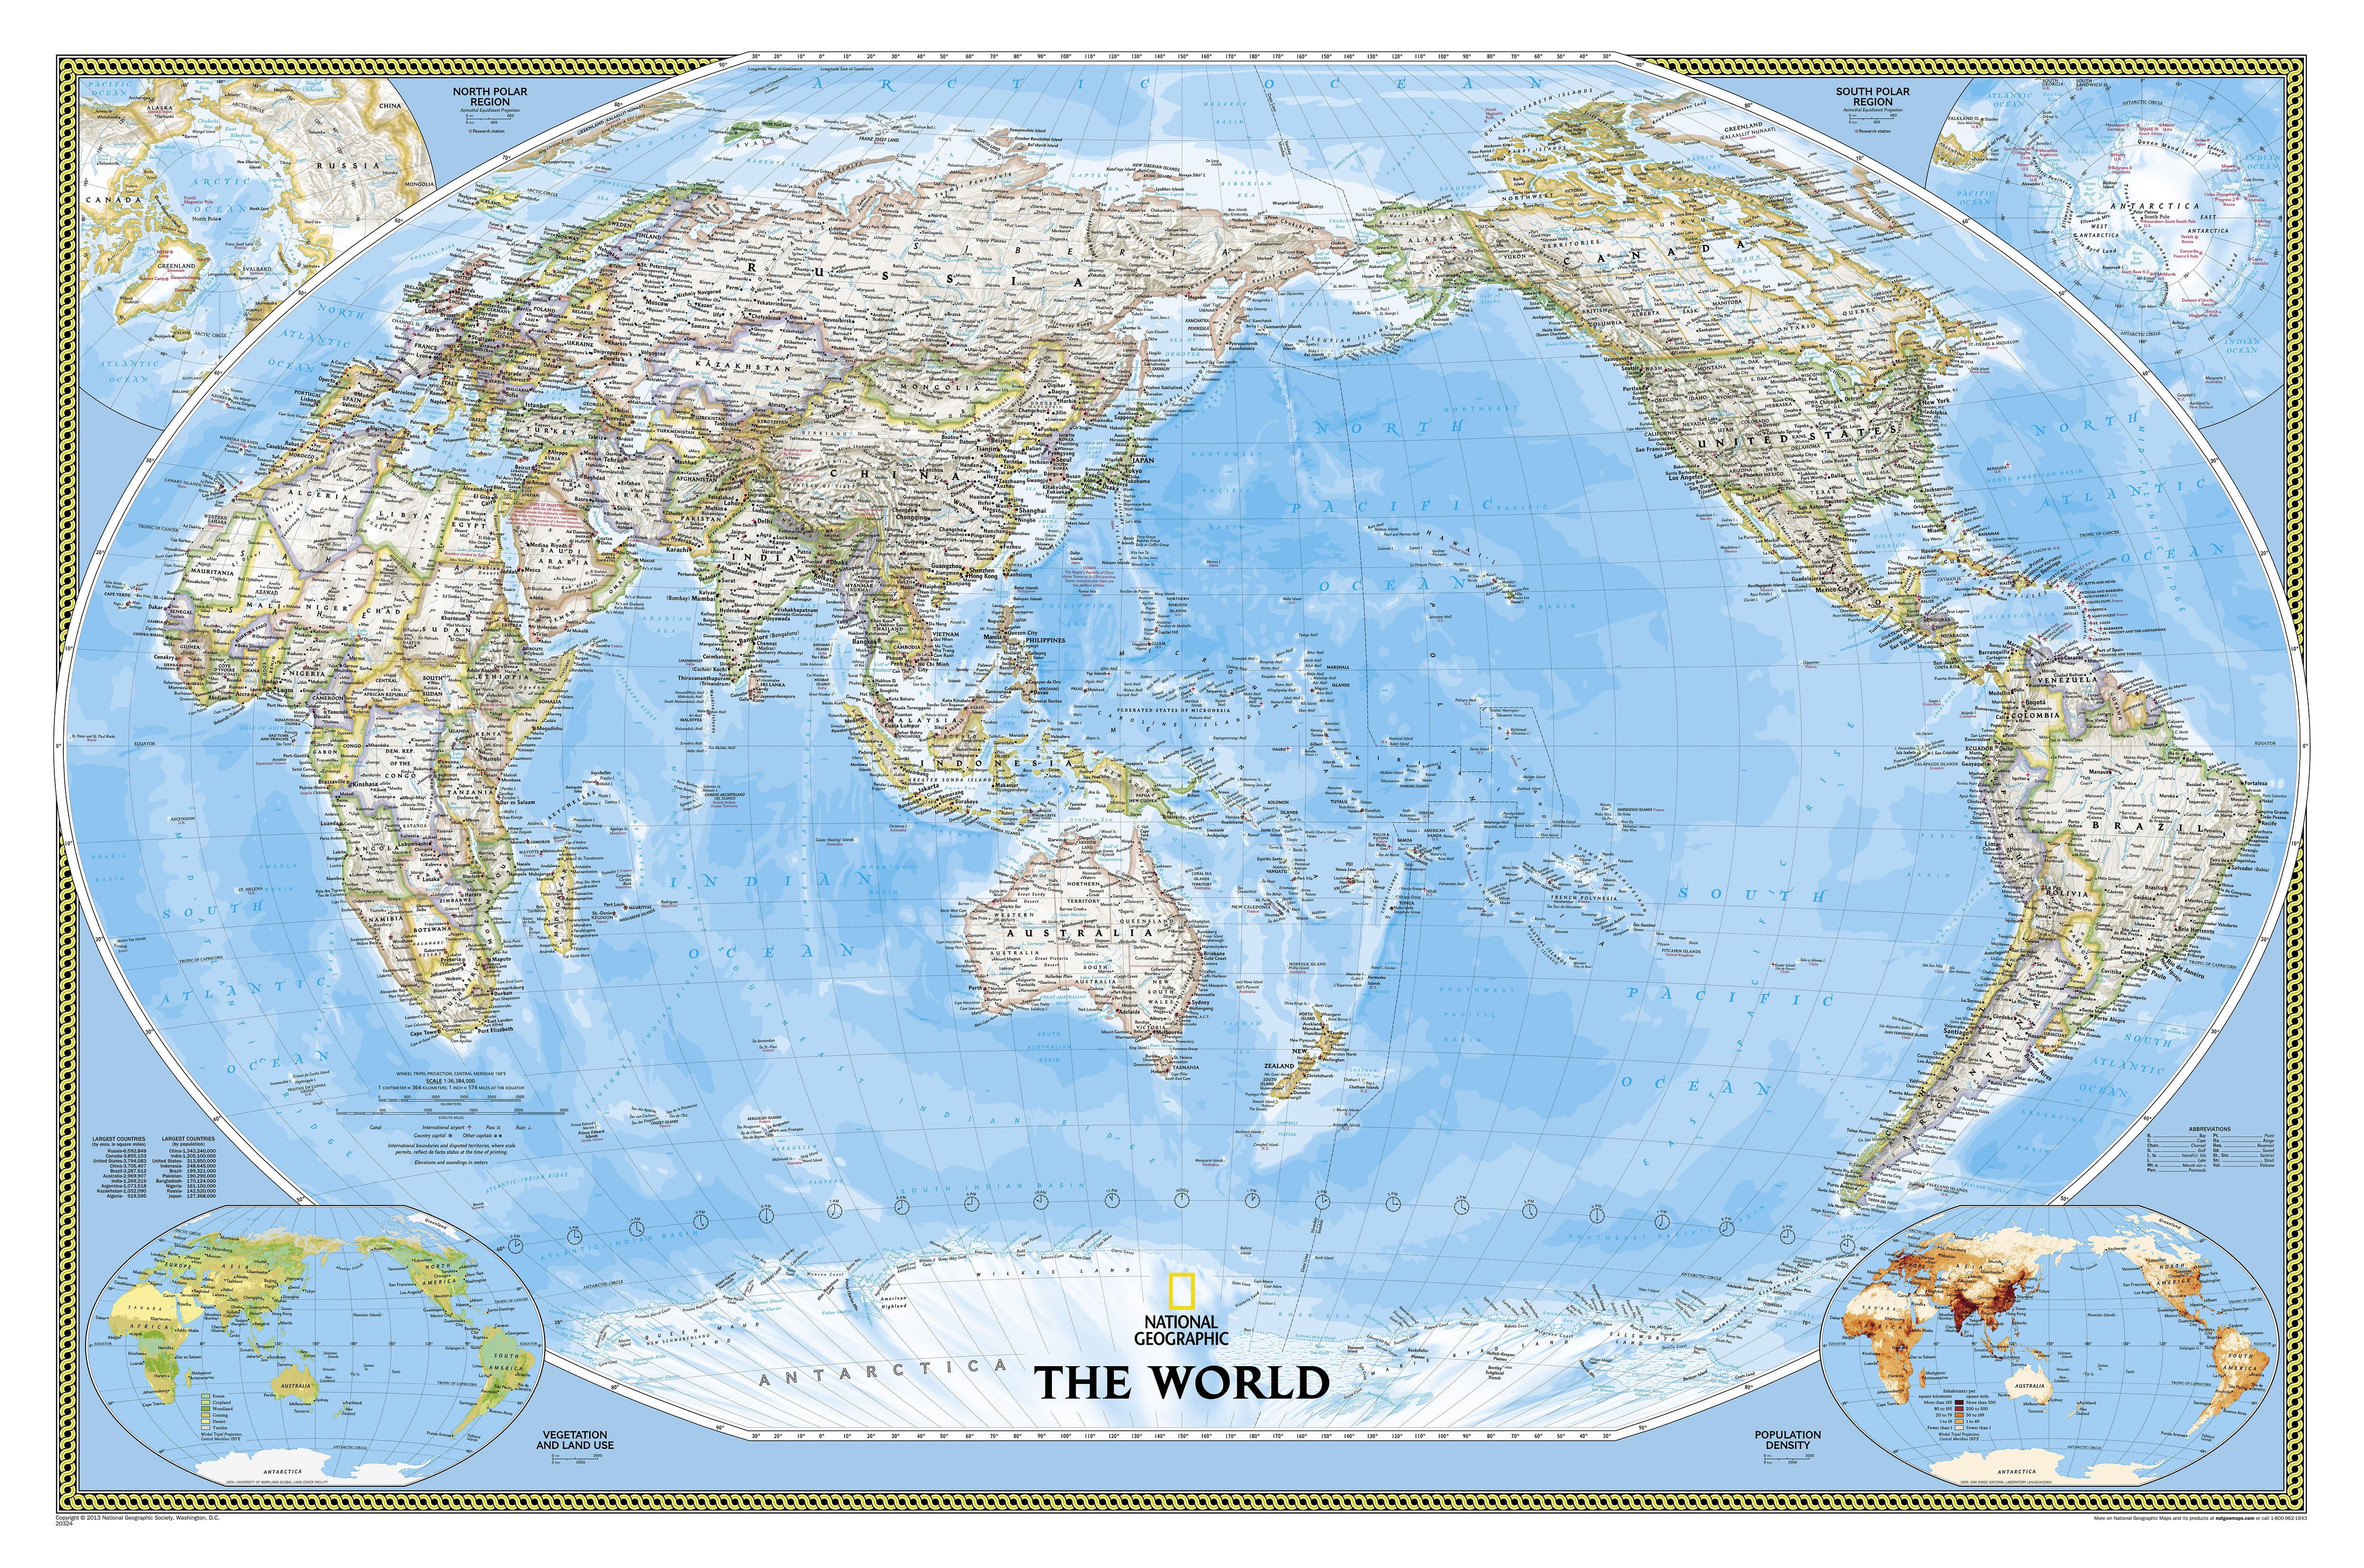 National geographic political world map pacific rim gumiabroncs Choice Image